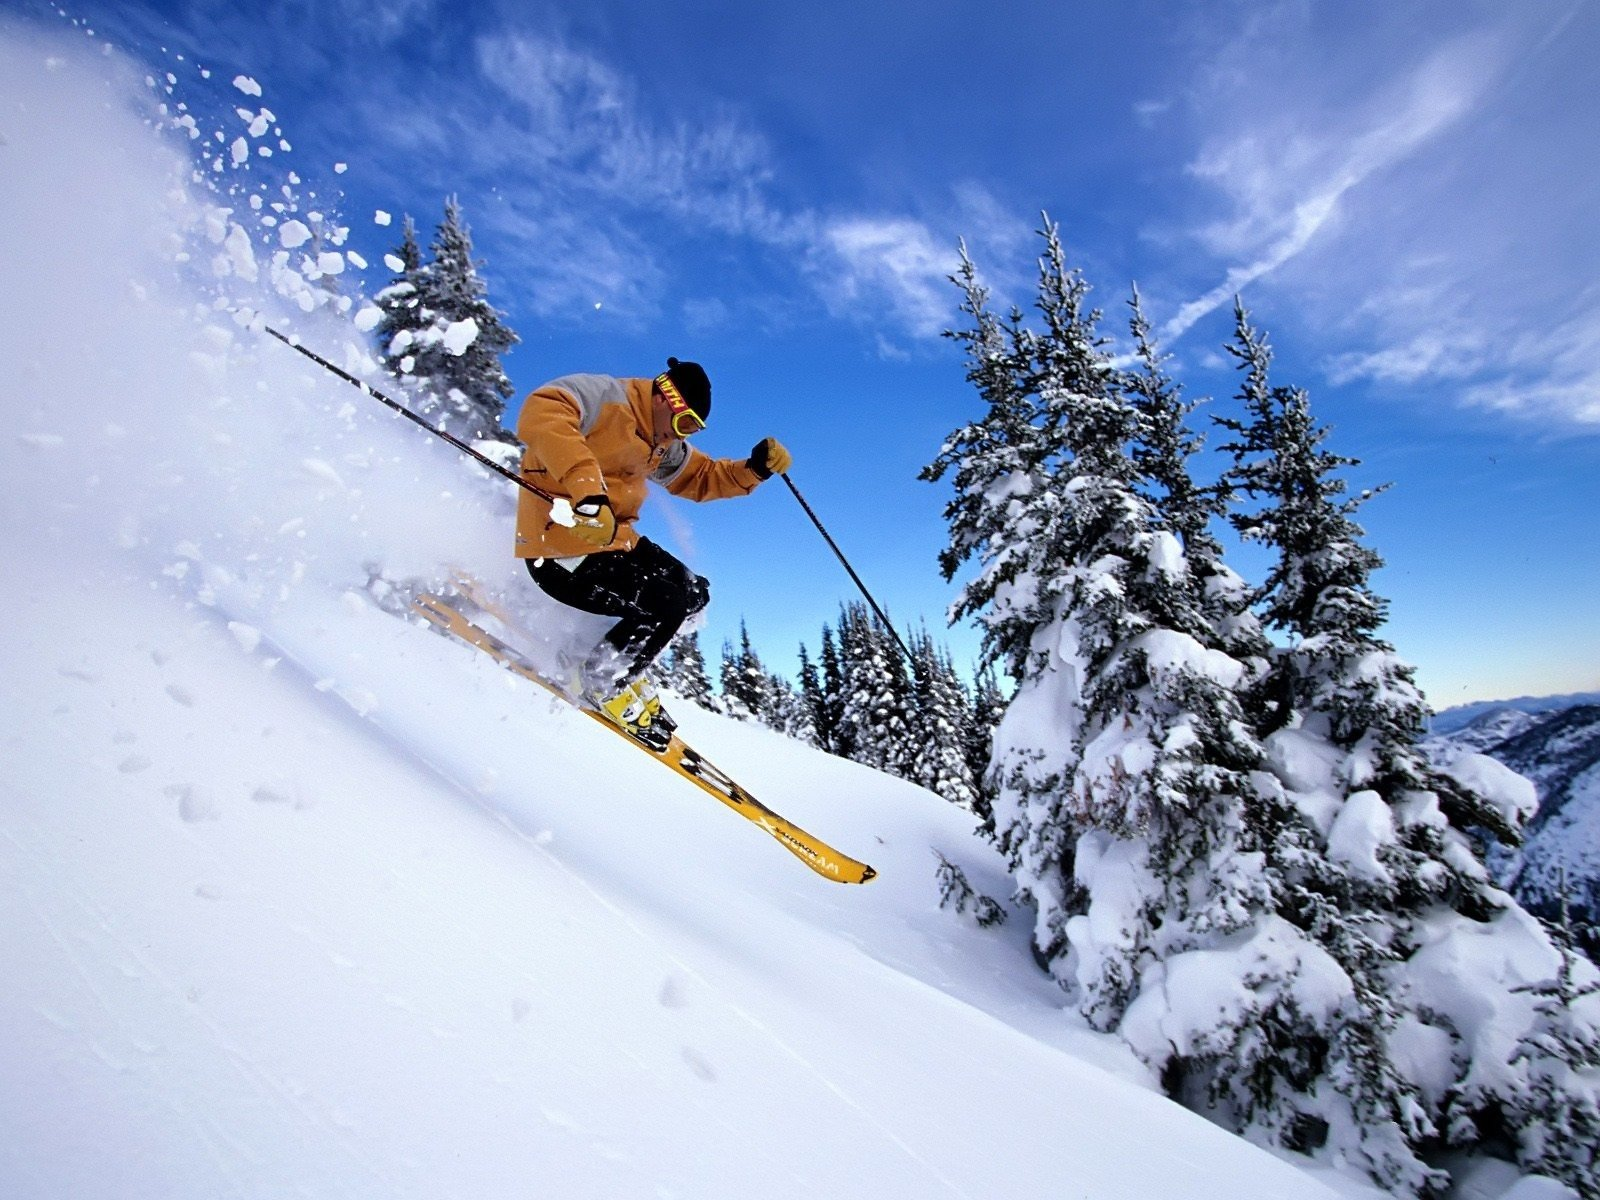 a description of snowboarding in winter sports